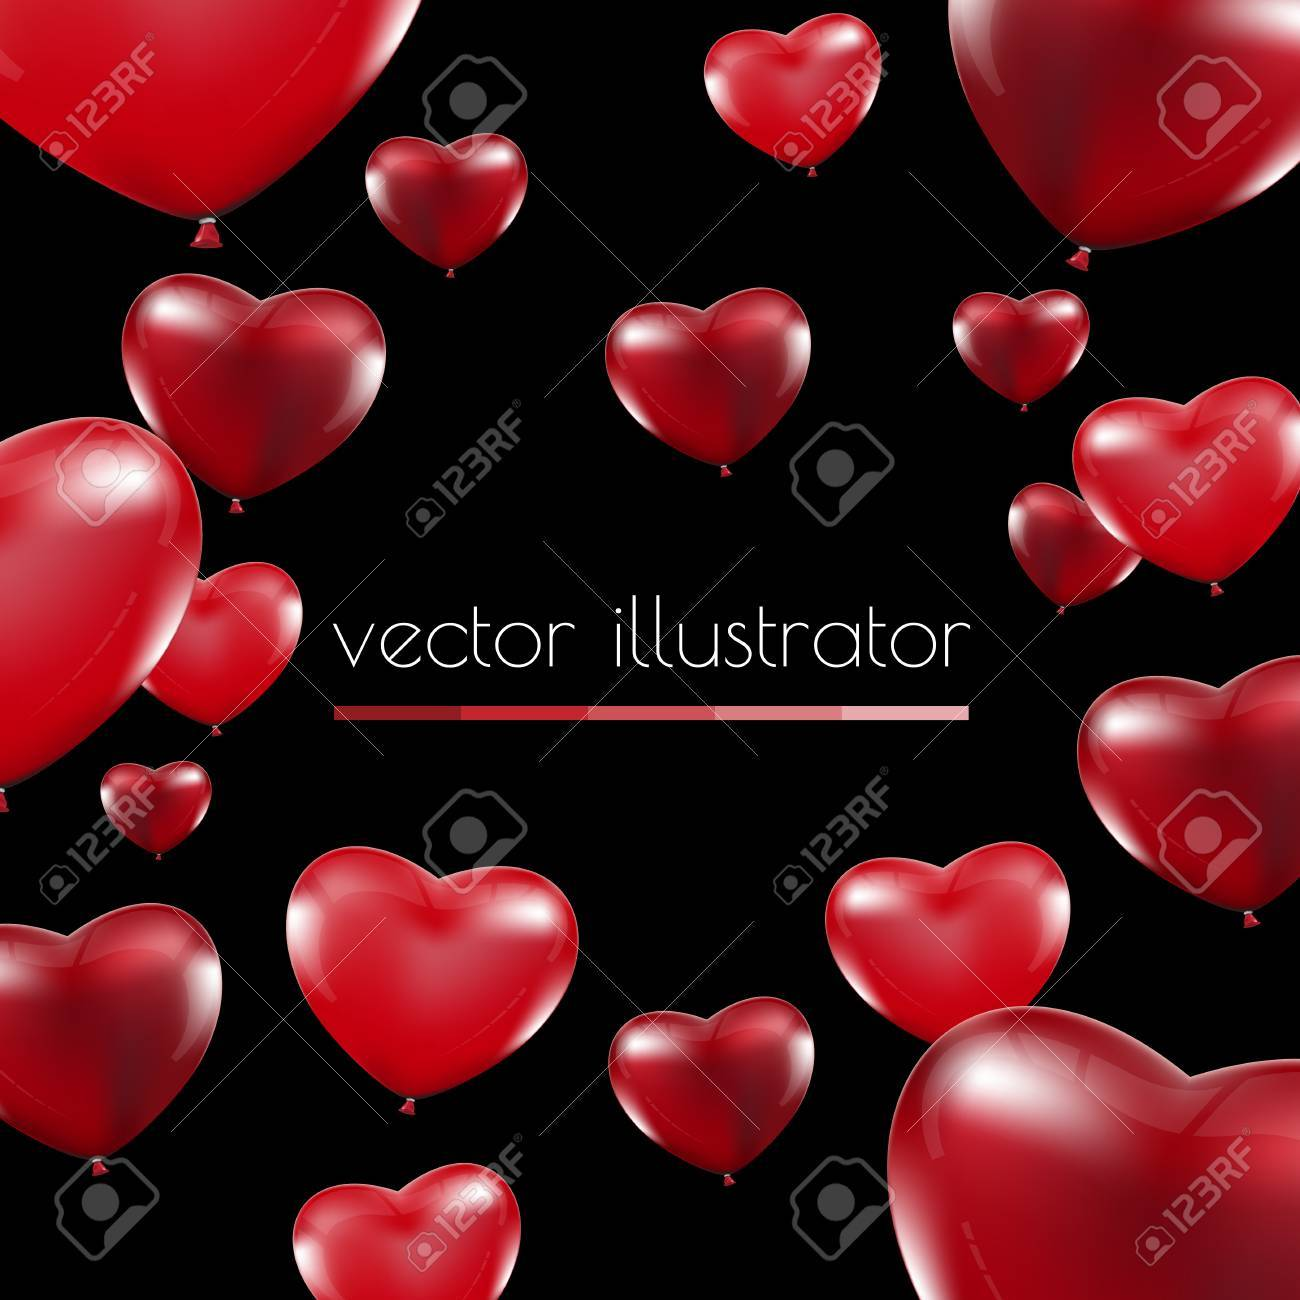 Happy Valentines Day, Red heart balloons colorful illustration background - 50910080